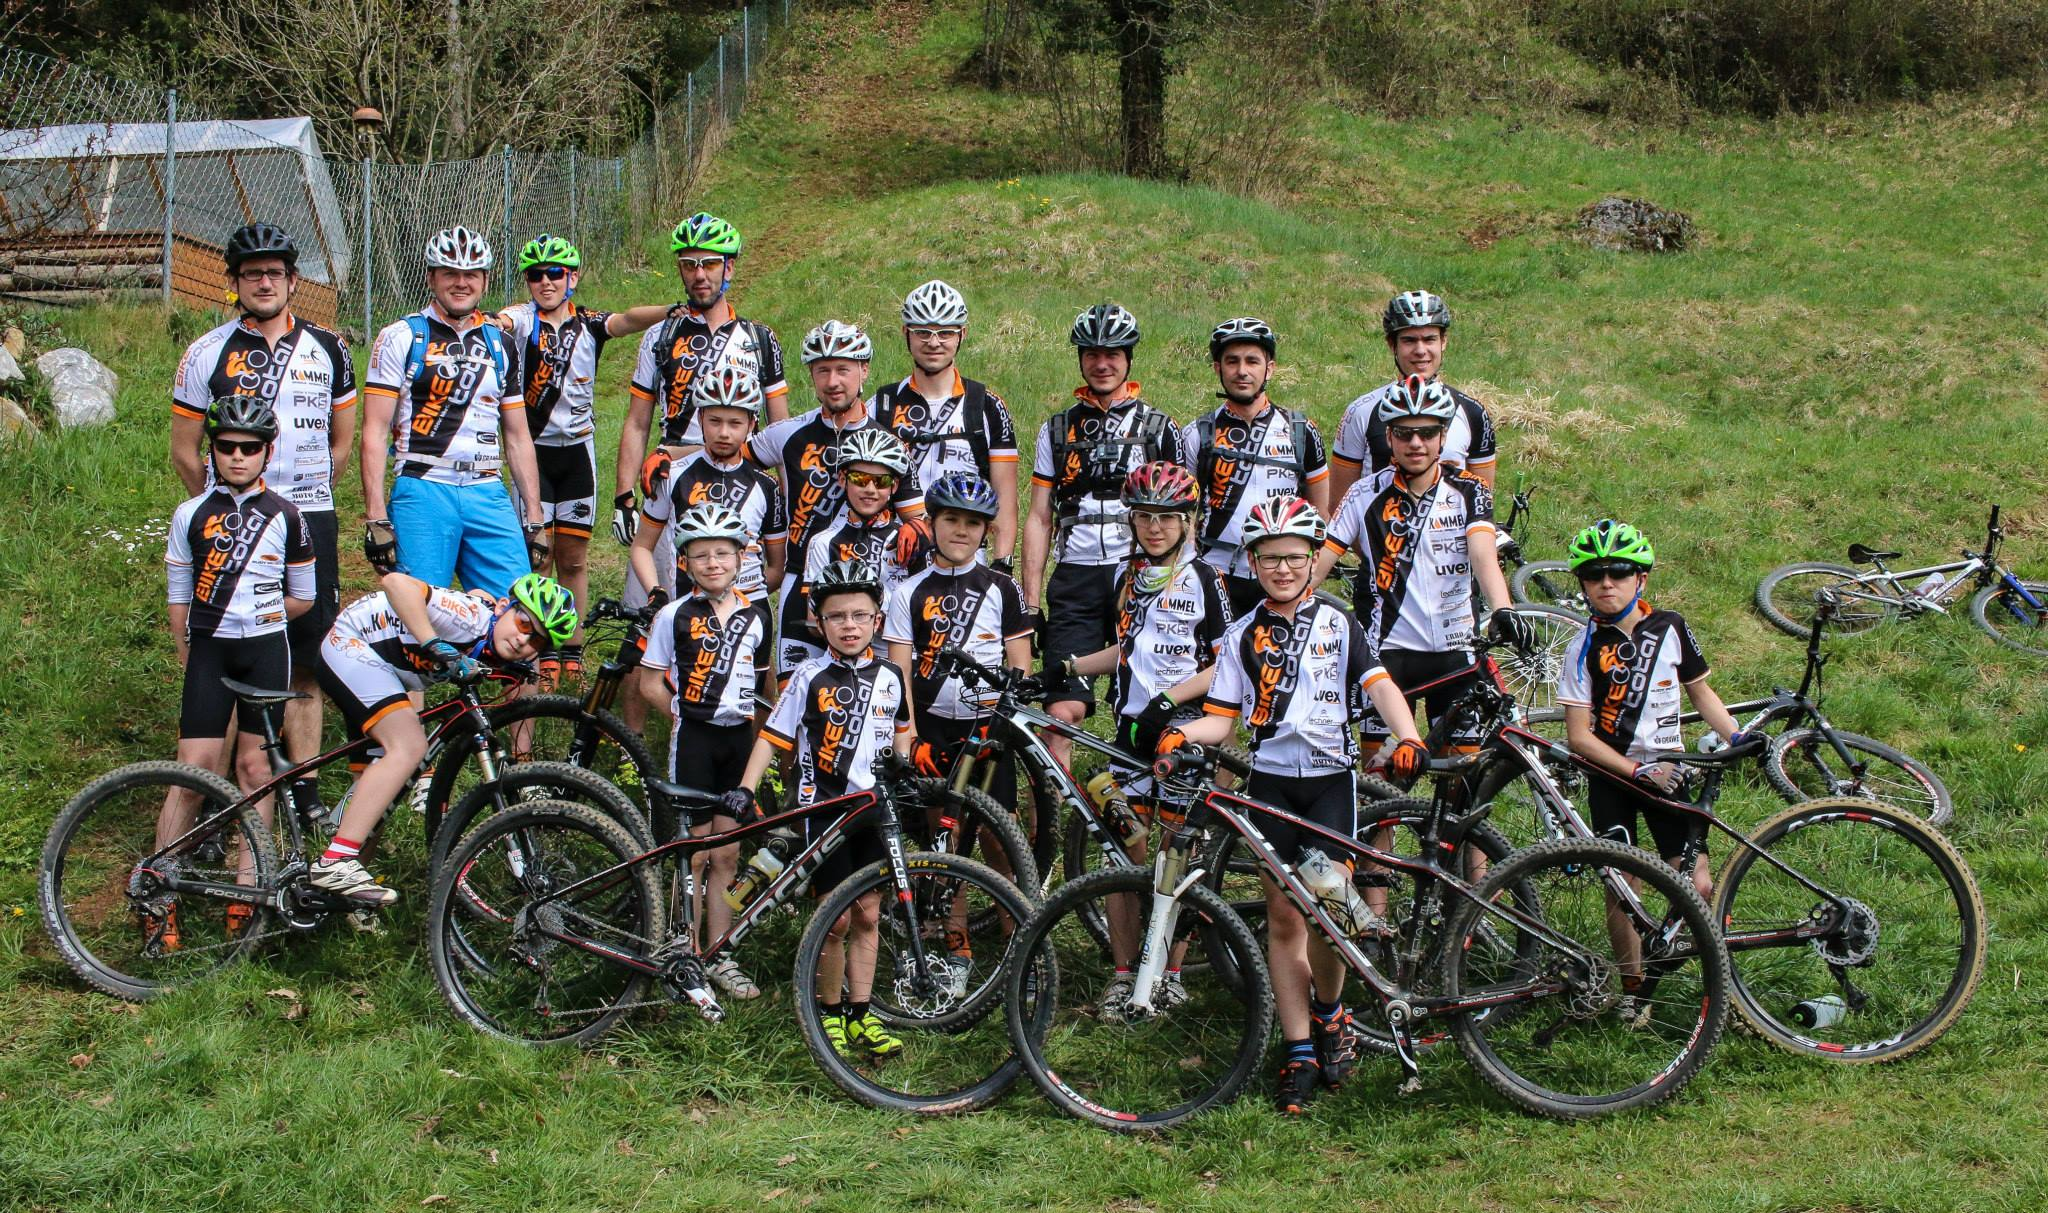 Trainingslager-Stattegg-2015.jpg